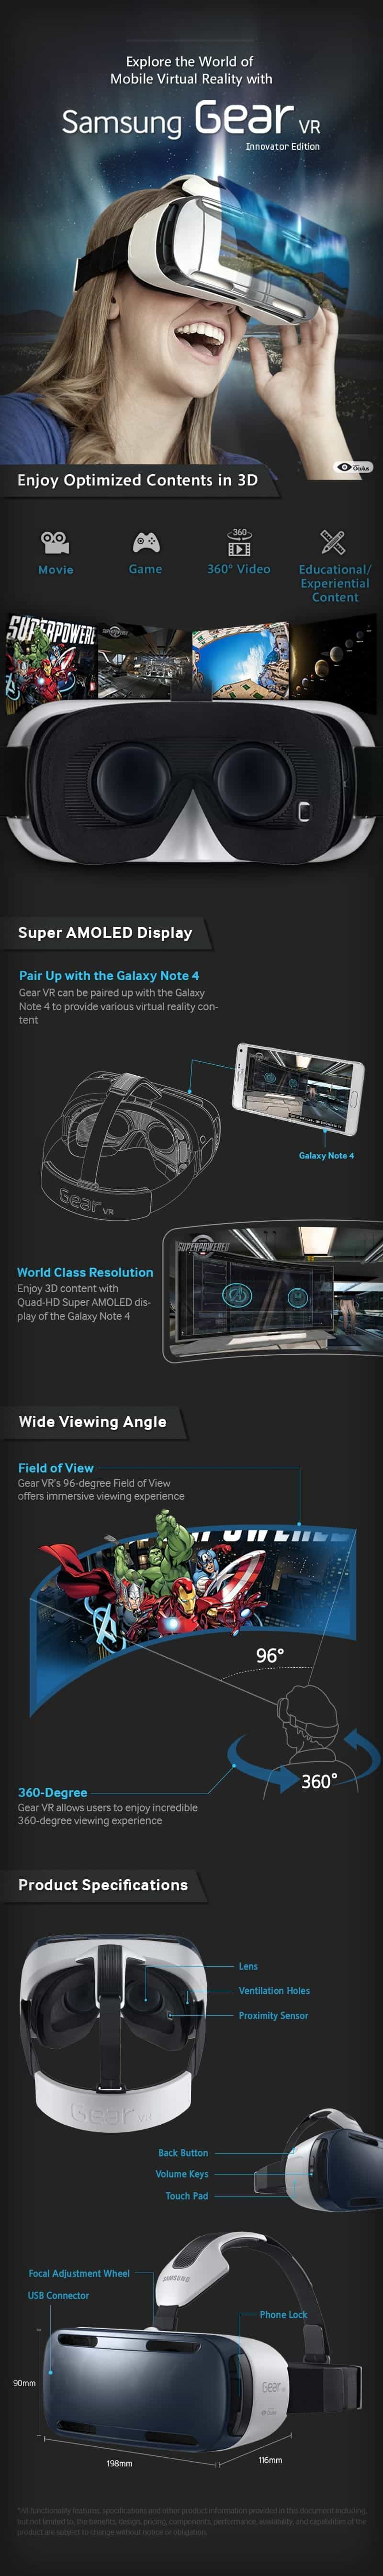 samsung gear vr infographic-specs